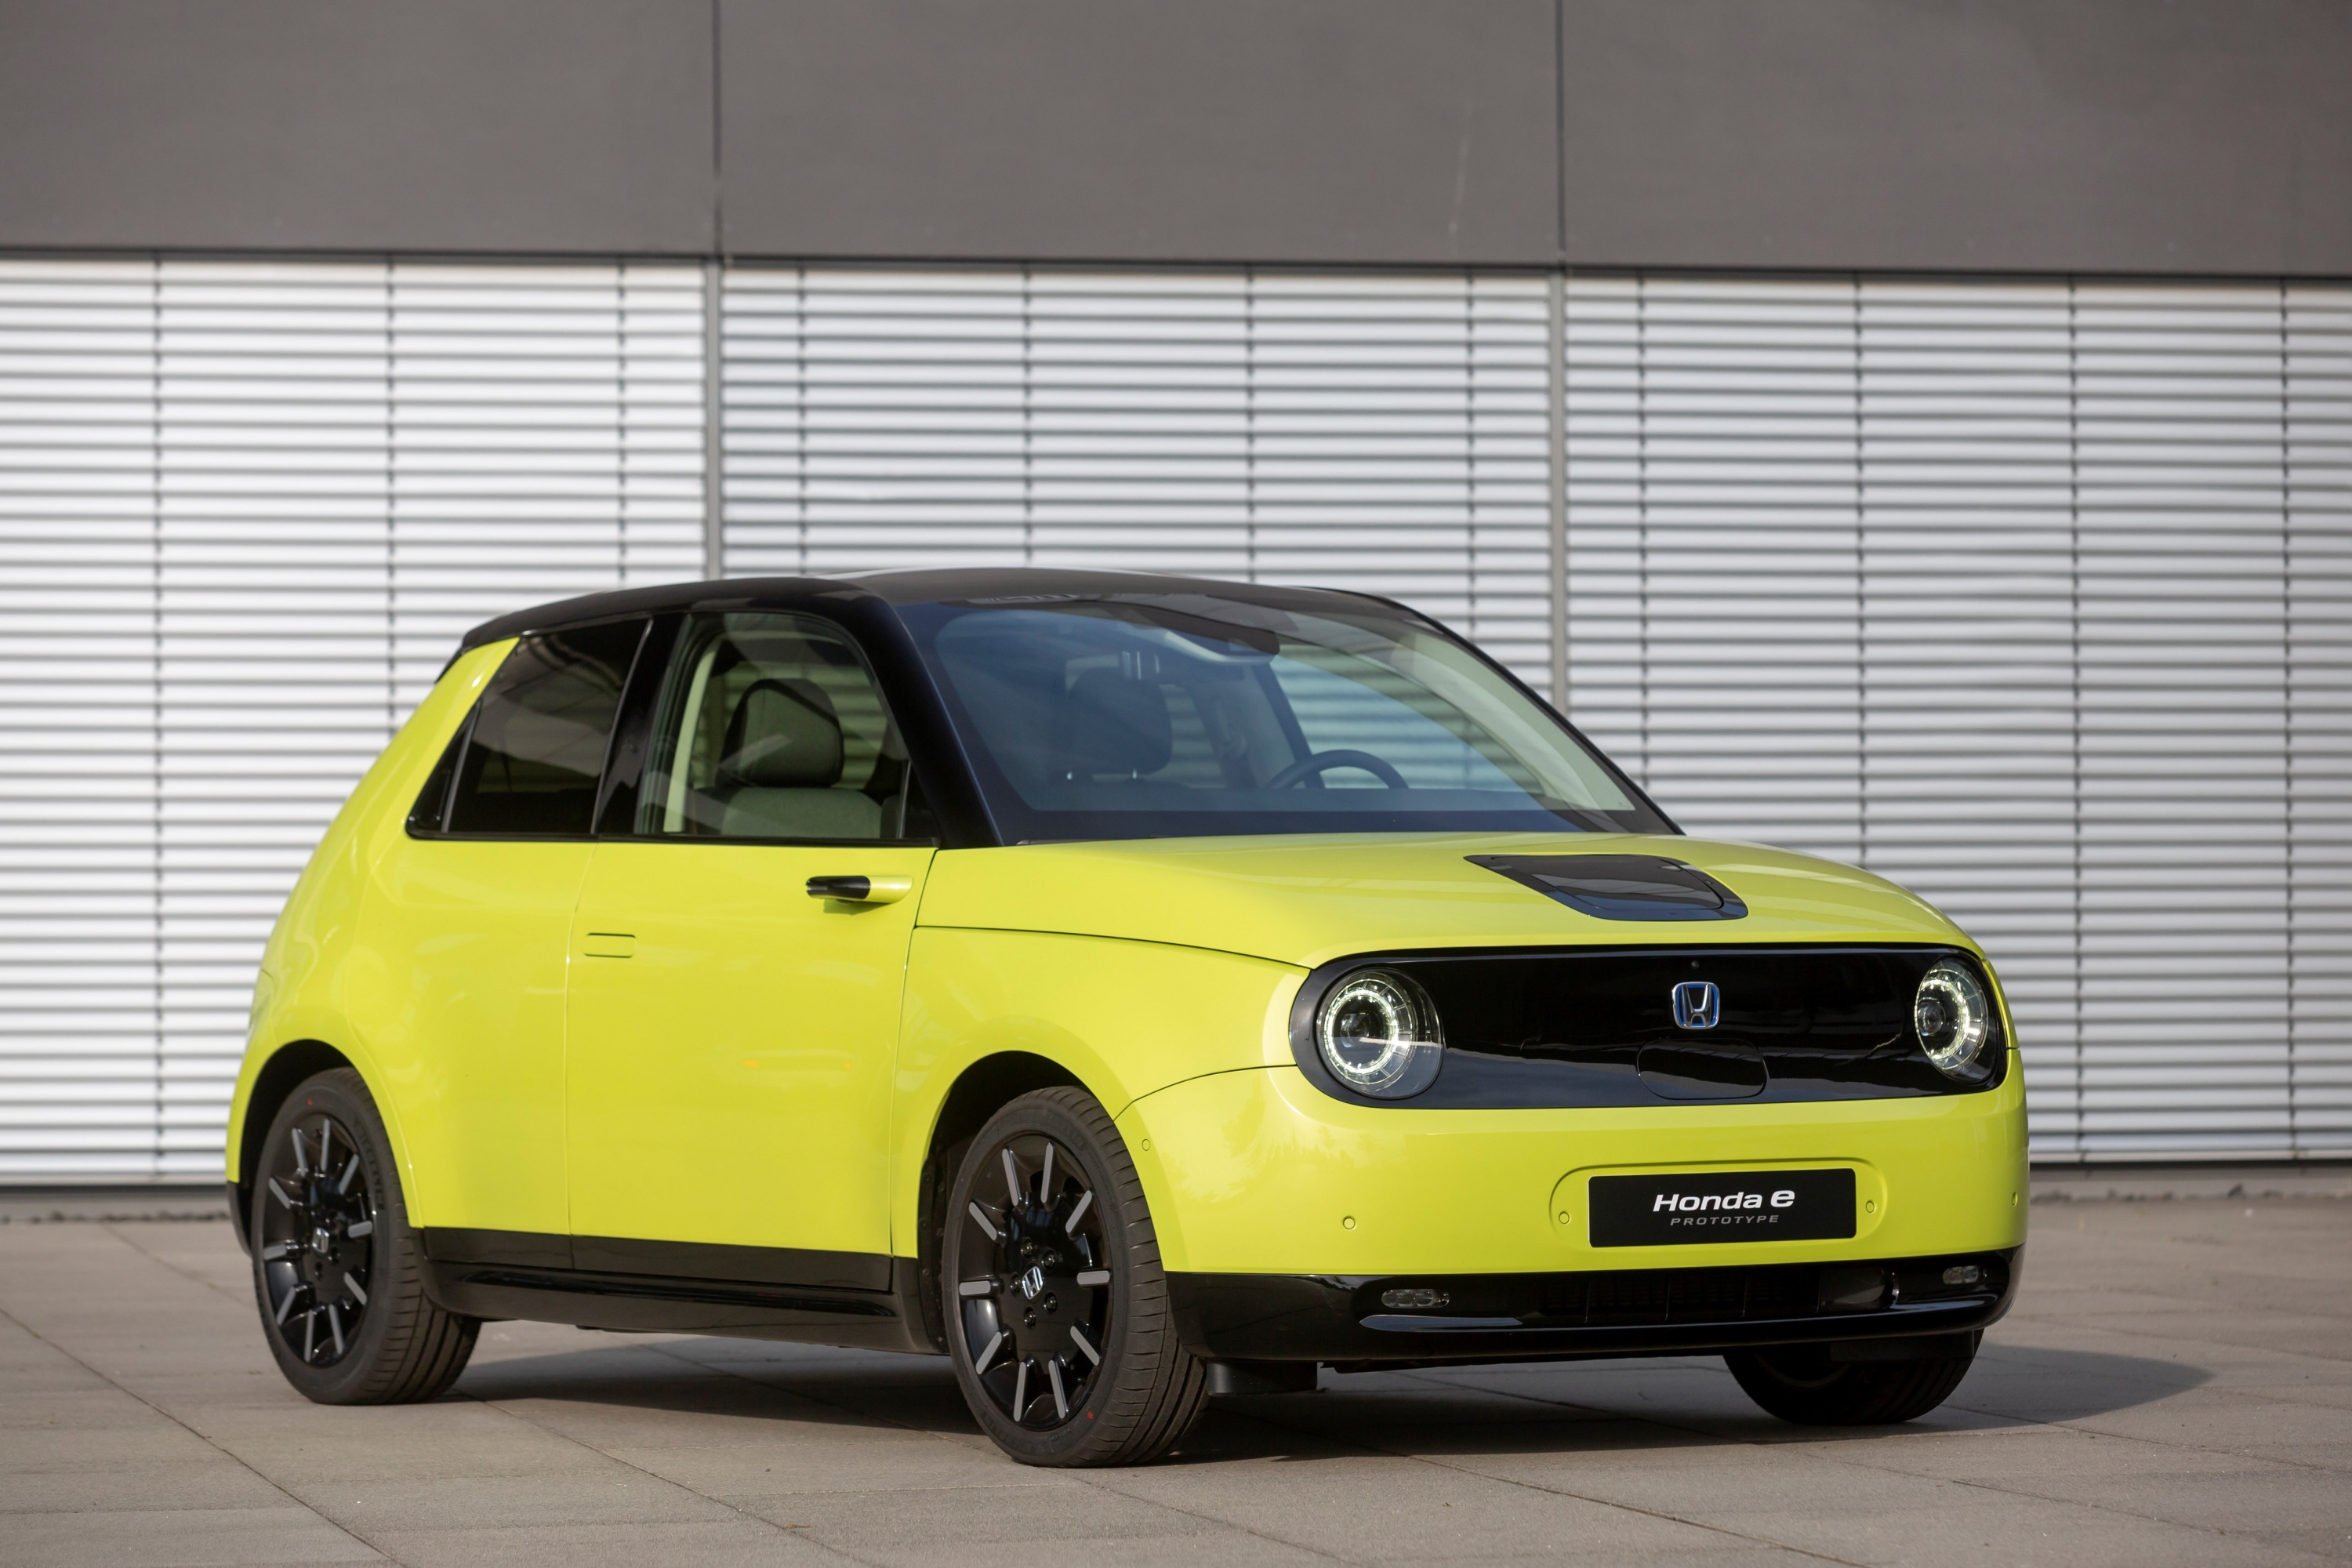 185276_HONDA_E_THE_PERFECT_BALANCE_OF_EFFICIENCY_AND_PERFORMANCE_FOR_URBAN.jpg